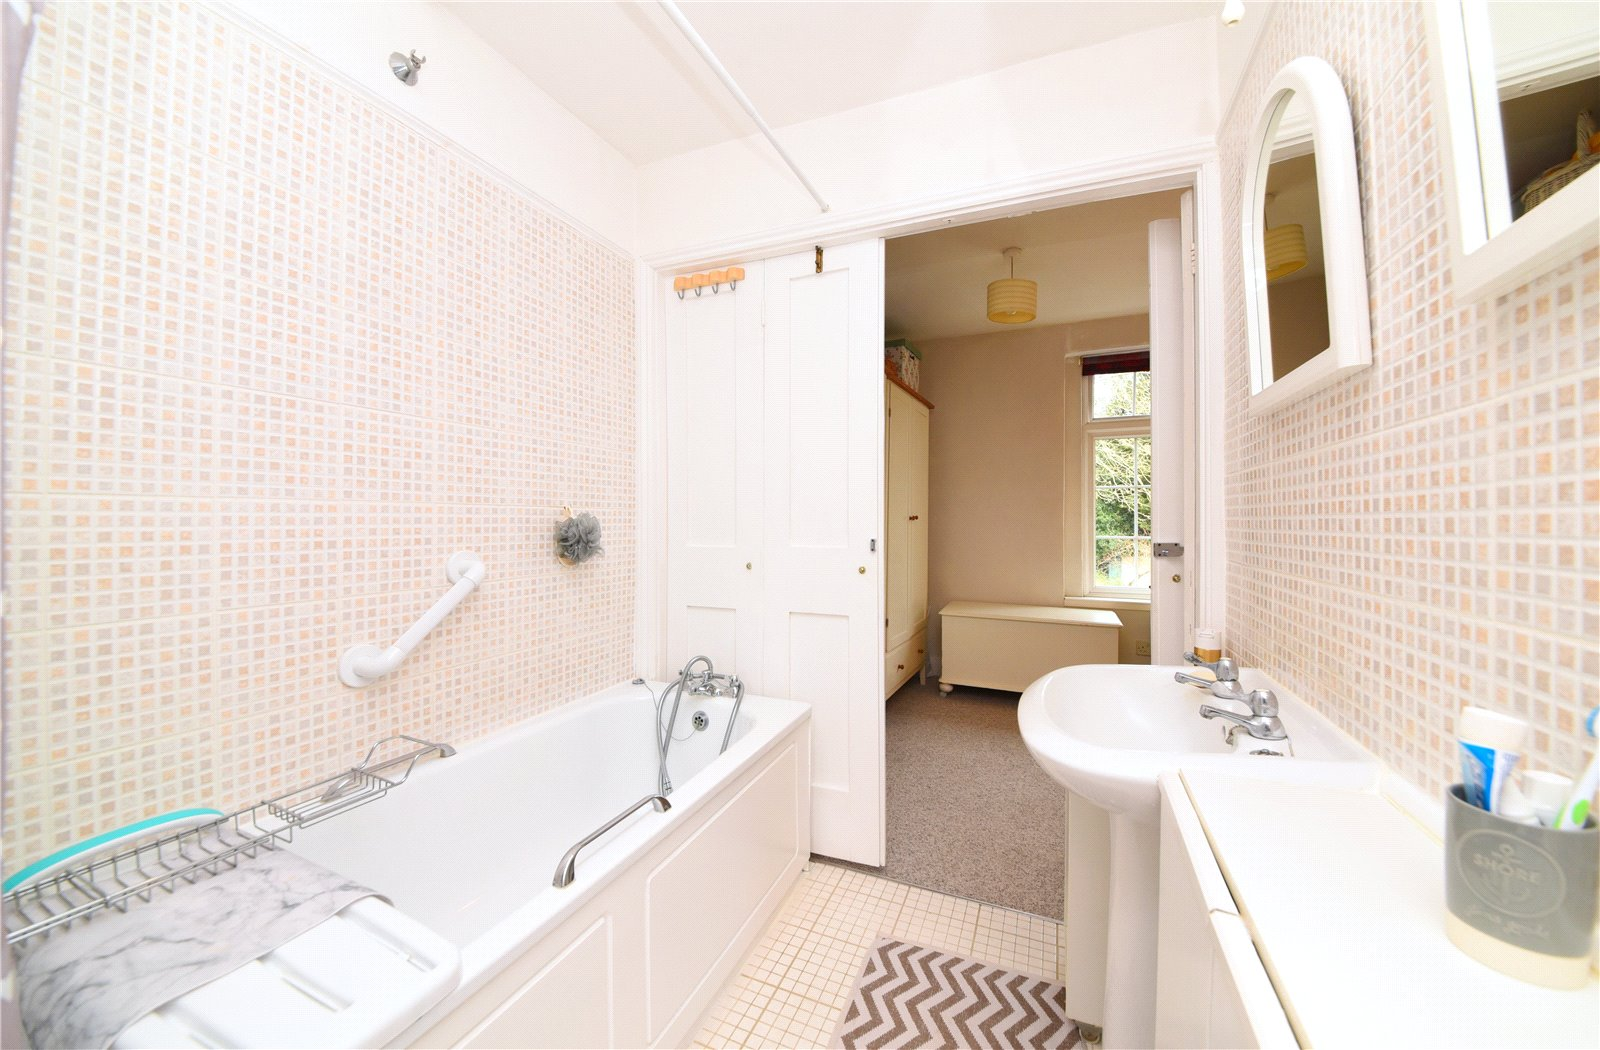 2 bed house for sale in London, N12 9JN 6